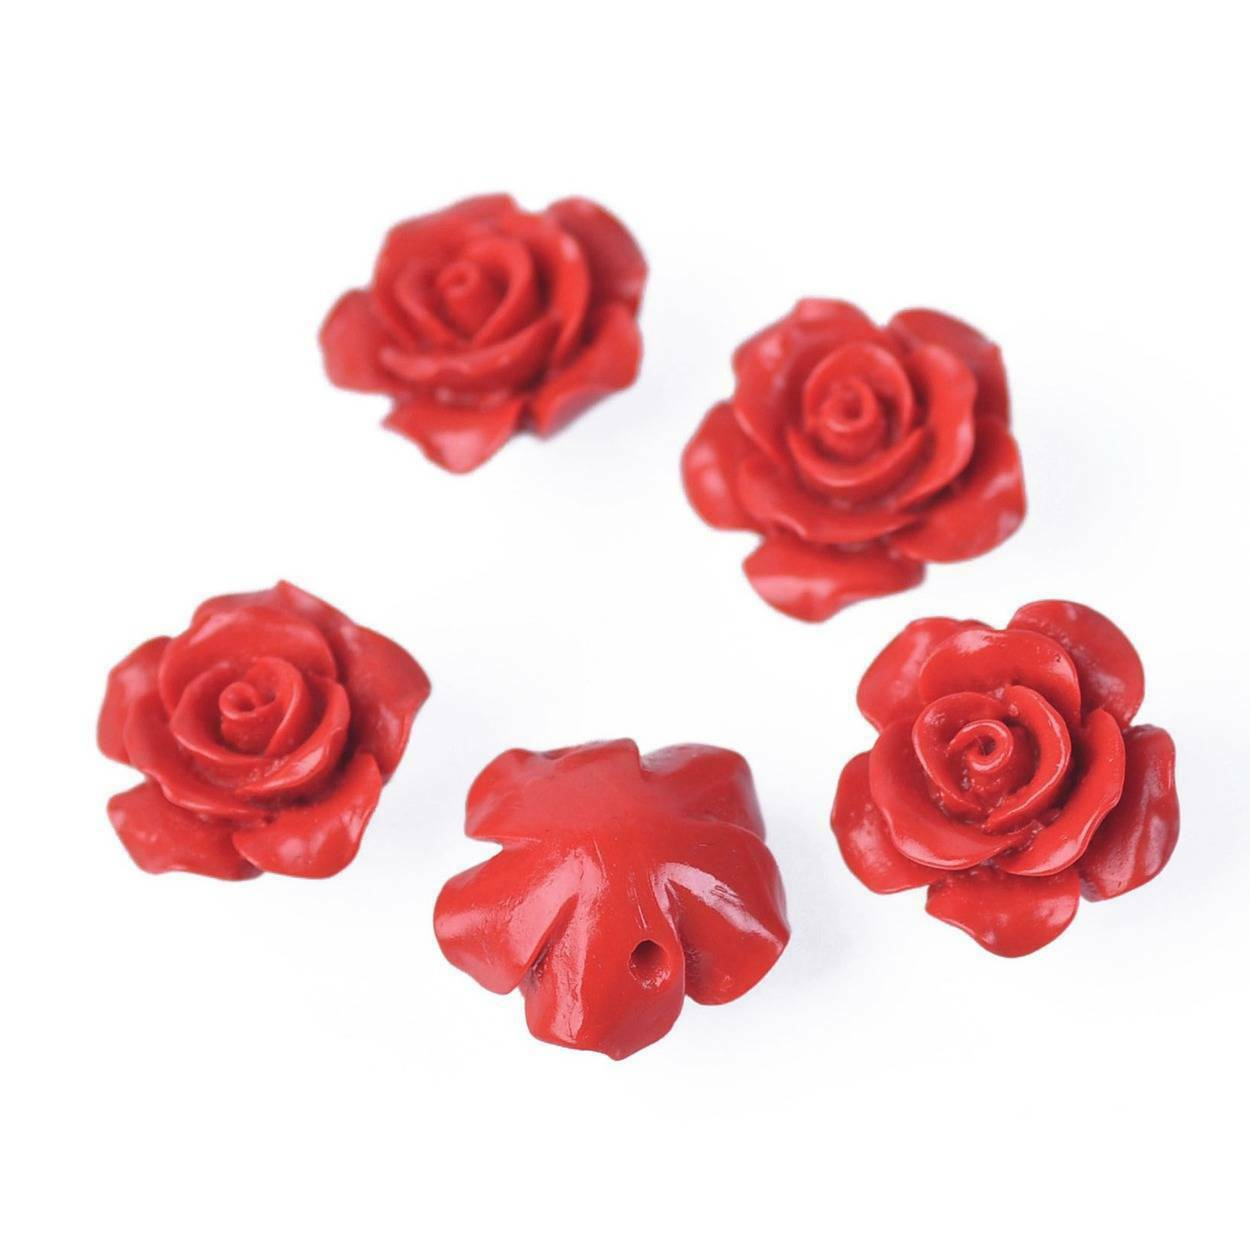 5 x Carved Red Cinnabar Faux Lacquerware Flower Coin Beads 21mm Round OBT16